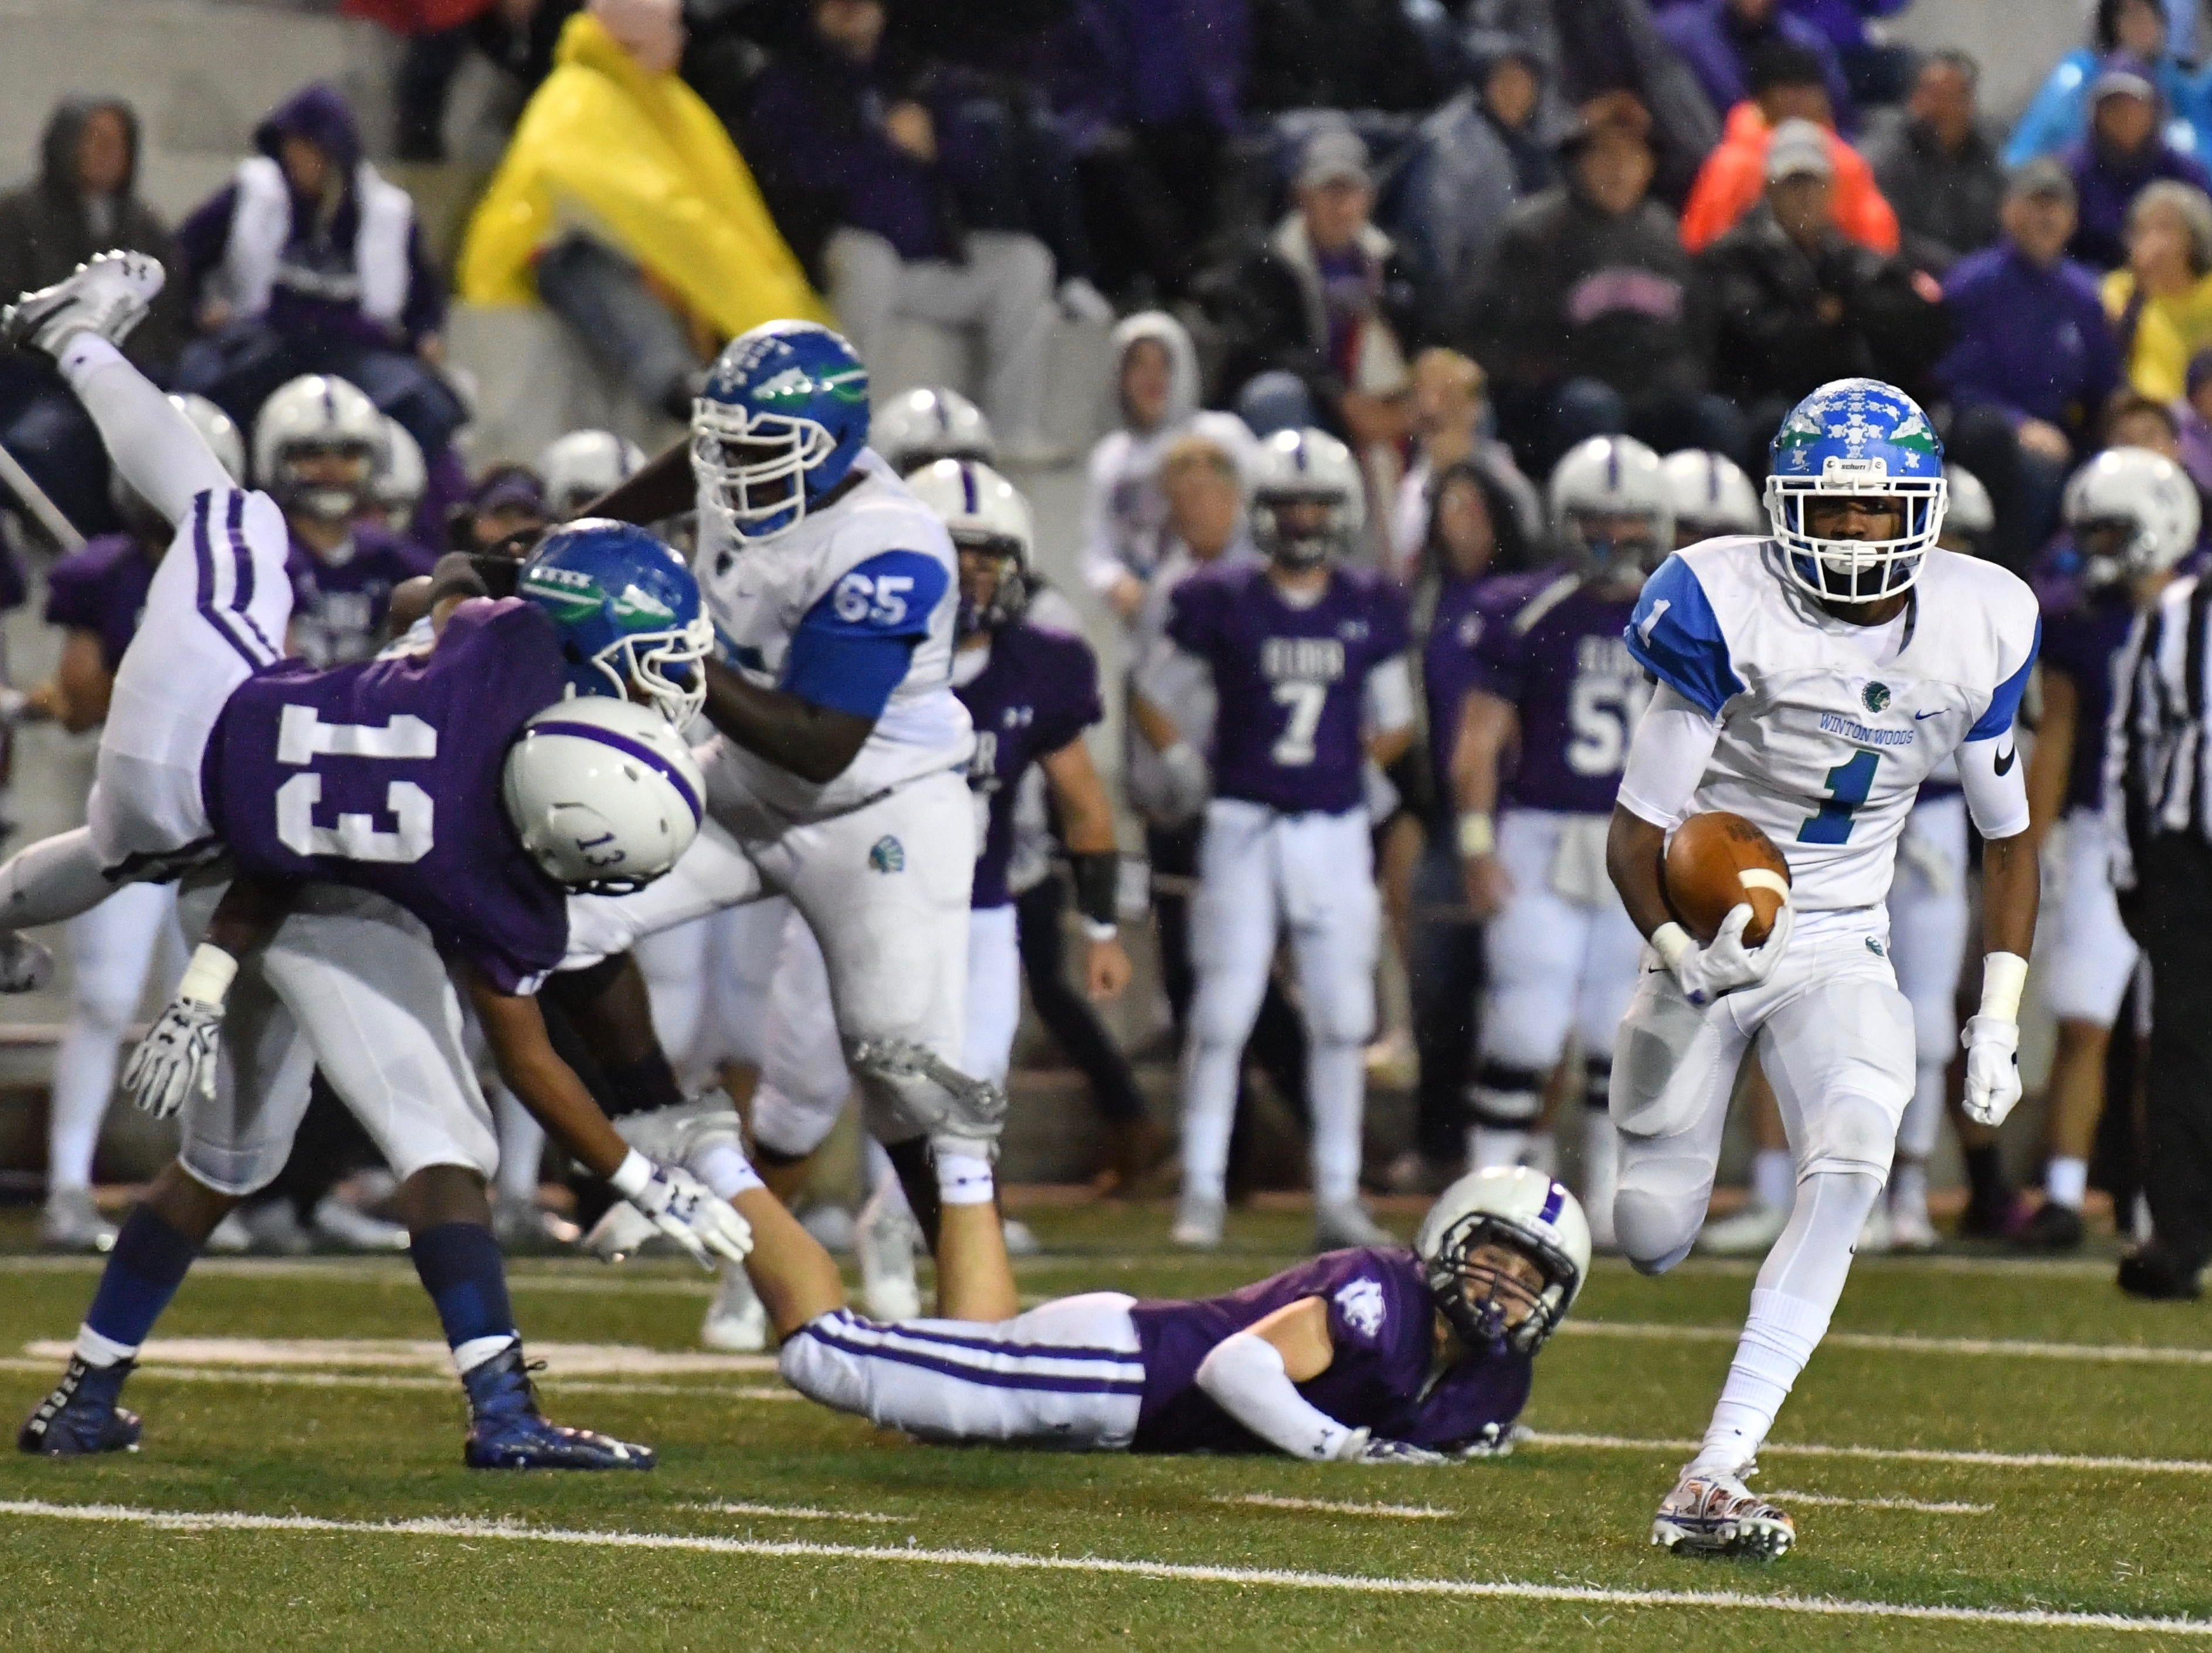 Winton Woods' Demeer Blankumsee scores a wild touchdown in the first half against Elder, however, a holding penalty against Winton Woods would bring the ball back Friday, Oct. 12, 2018.